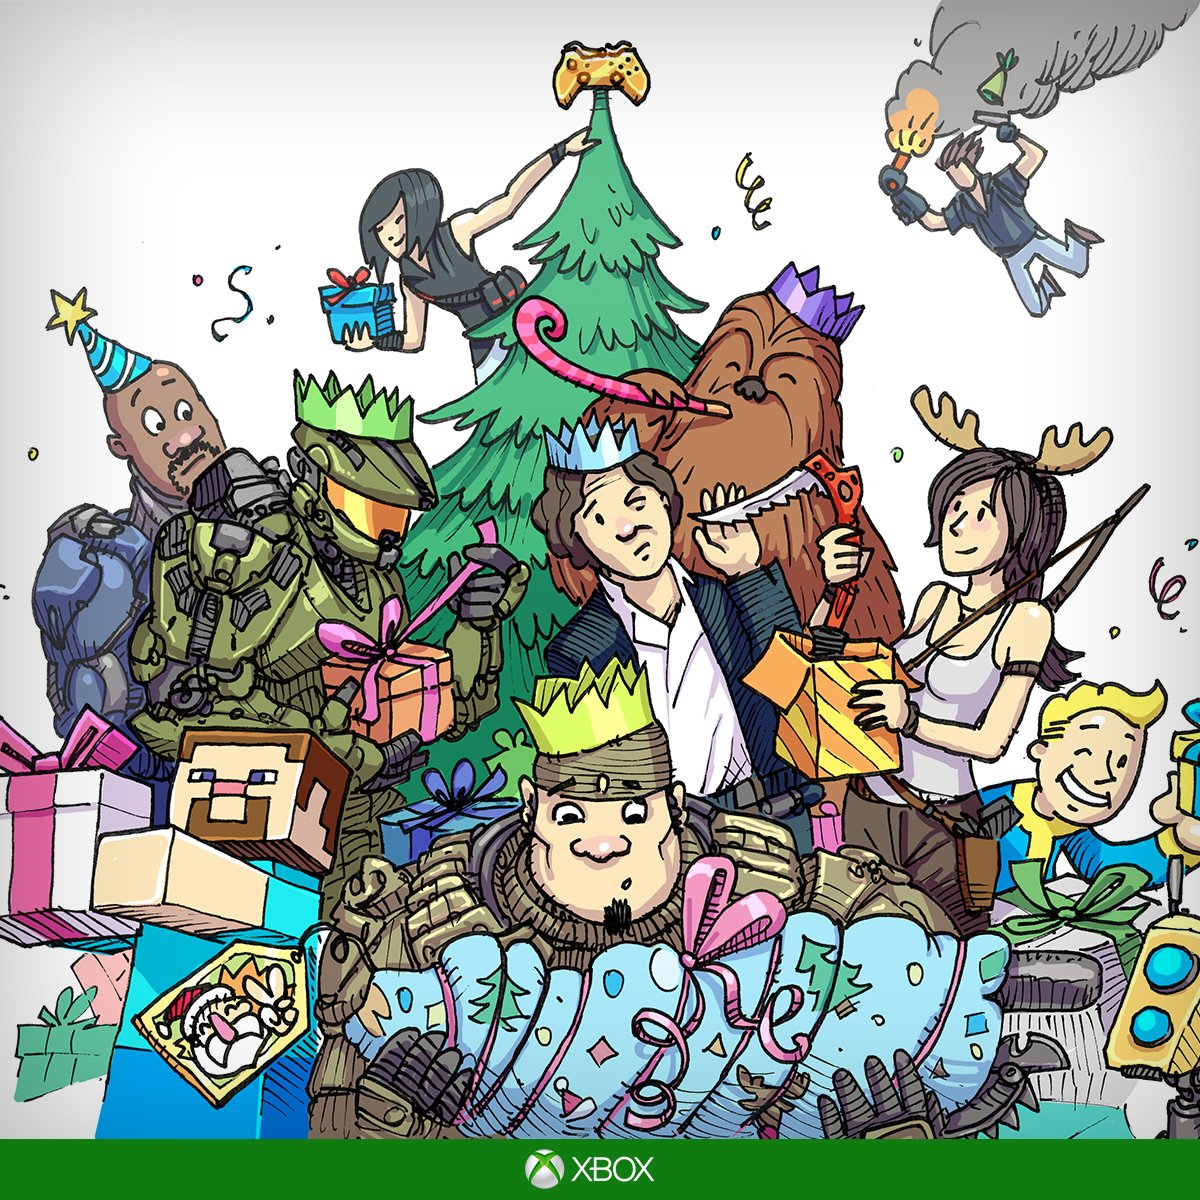 From everyone at Xbox Australia, we wish you a Merry Xmas! https://t.co/qAJLDN7OWv